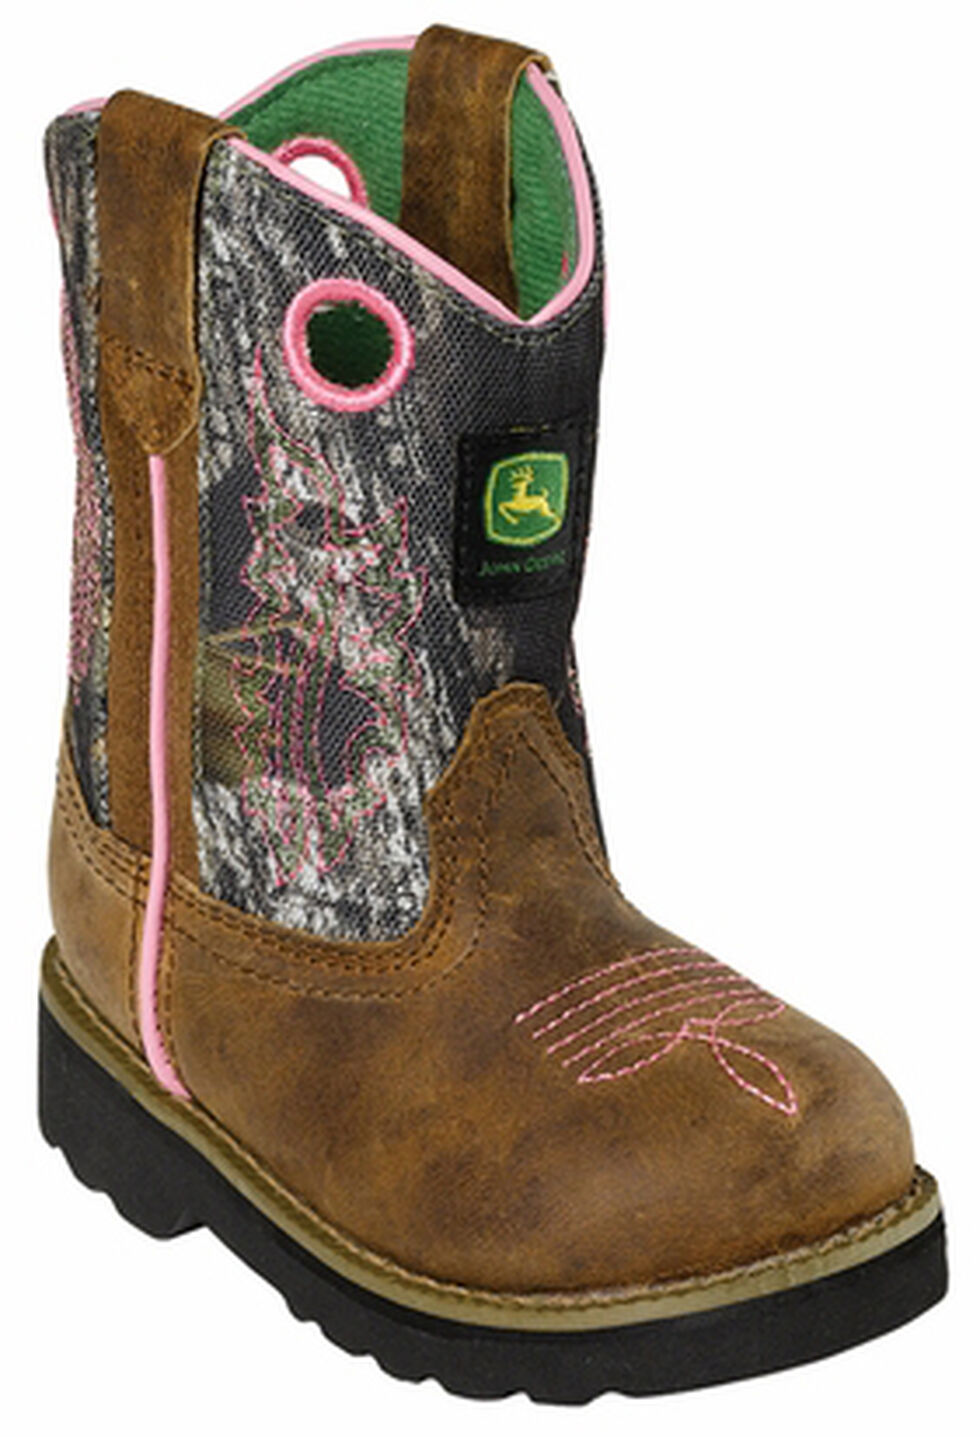 John Deere Toddler Girls' Johnny Popper Camo Western Boots - Square Toe, Camouflage, hi-res